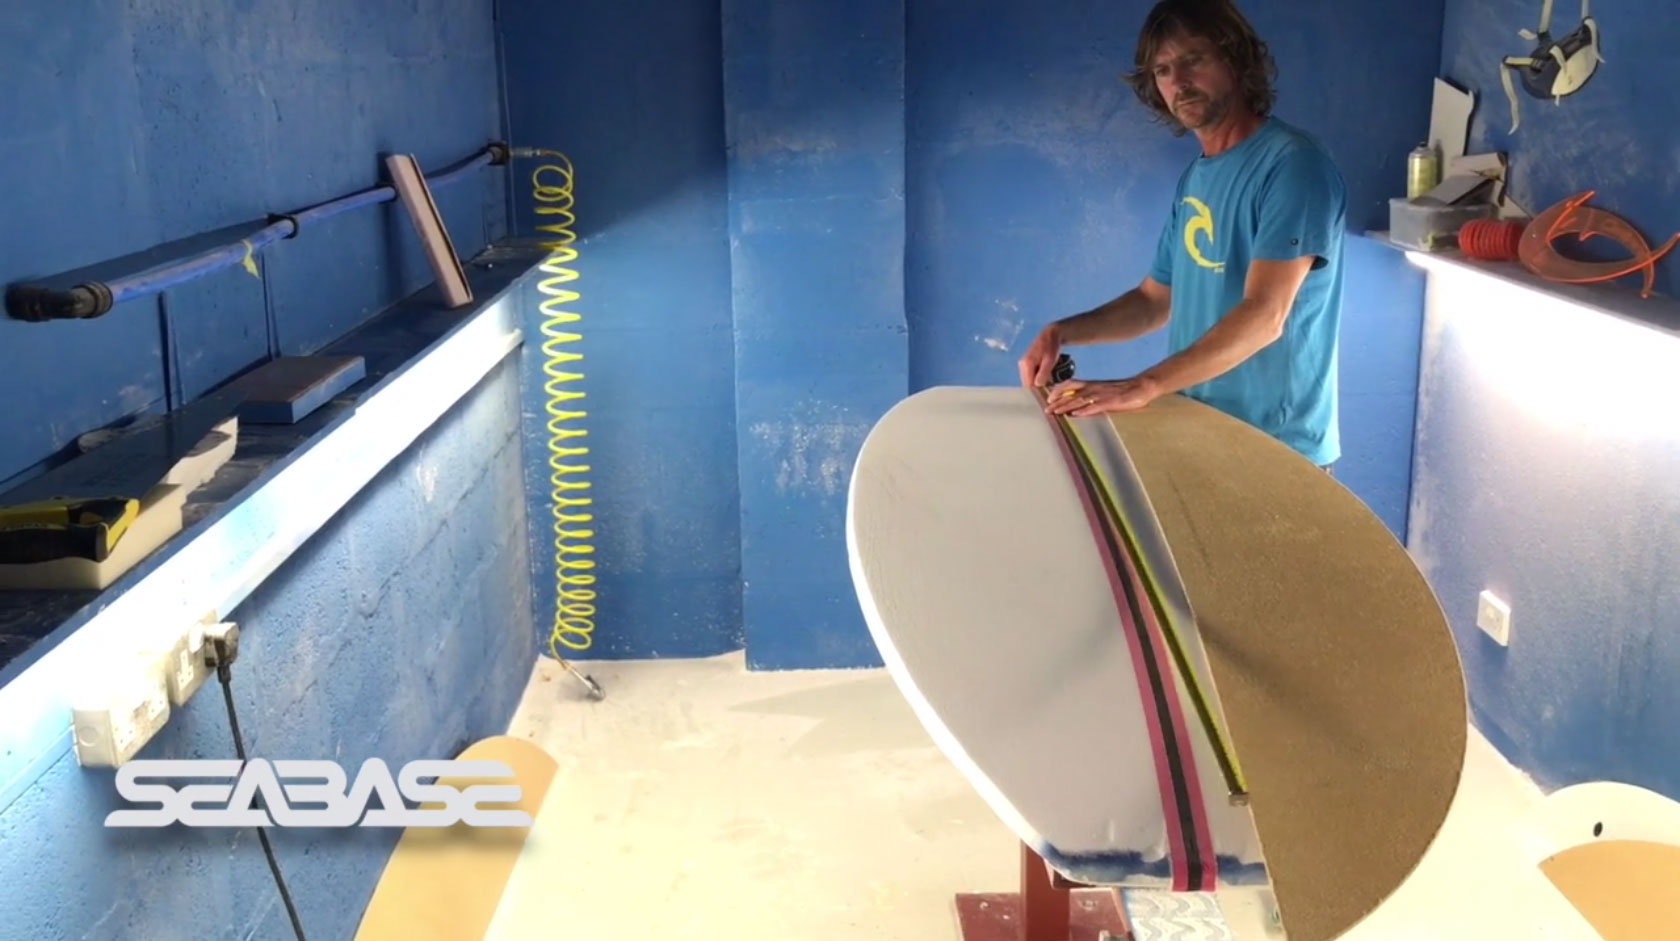 How to template a surfboard